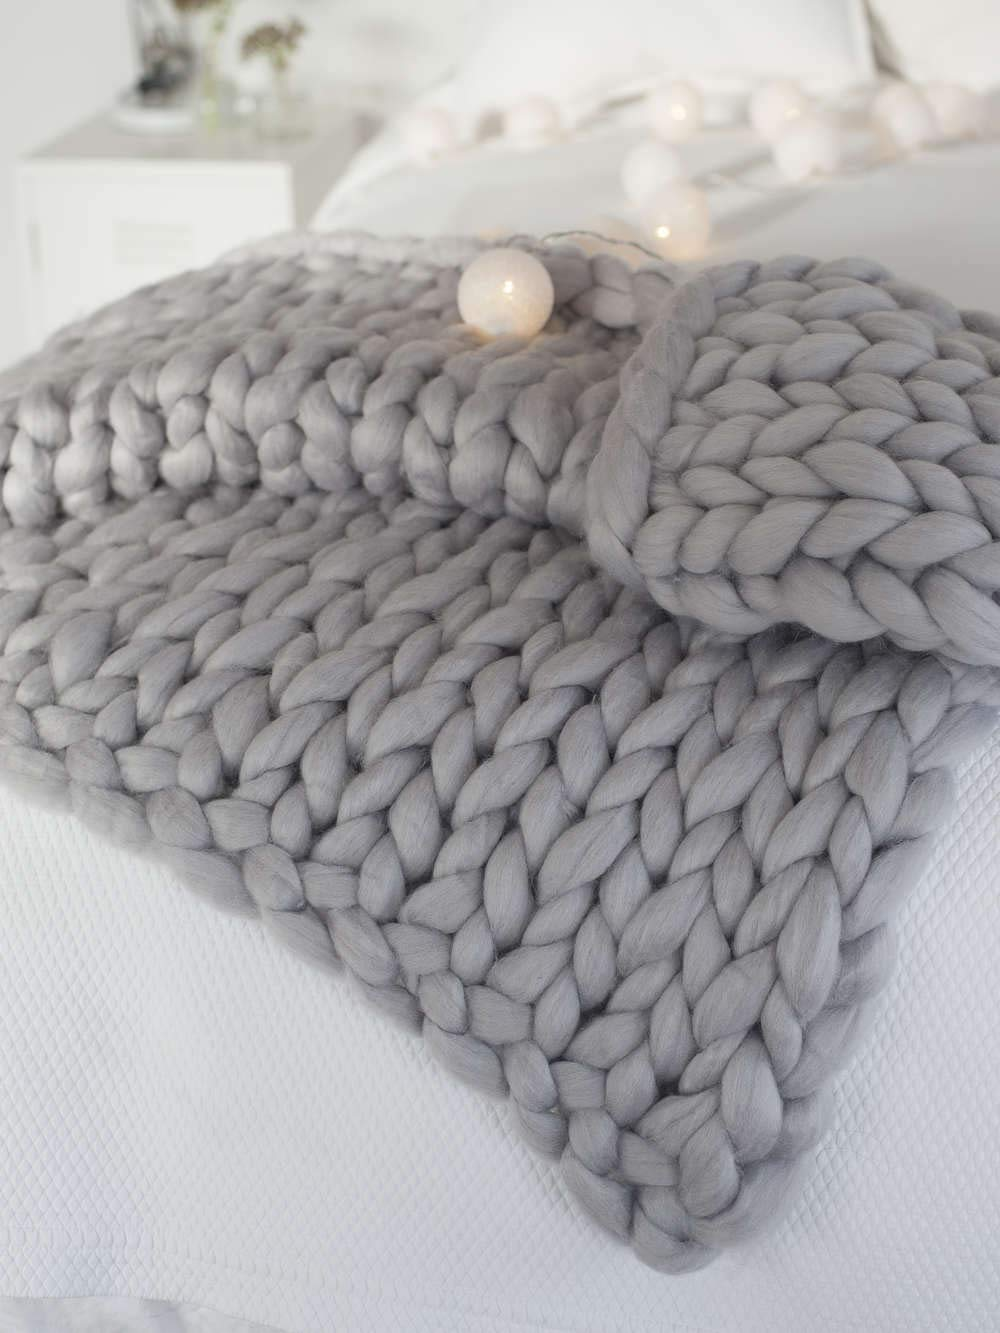 clootess Bulky Chunky Yarn Big Roving Wool for Hand Made Knitted DIY Sofa Bed Throw Blankets Light Grey 8 lbs = 3.6 kg by clootess (Image #7)